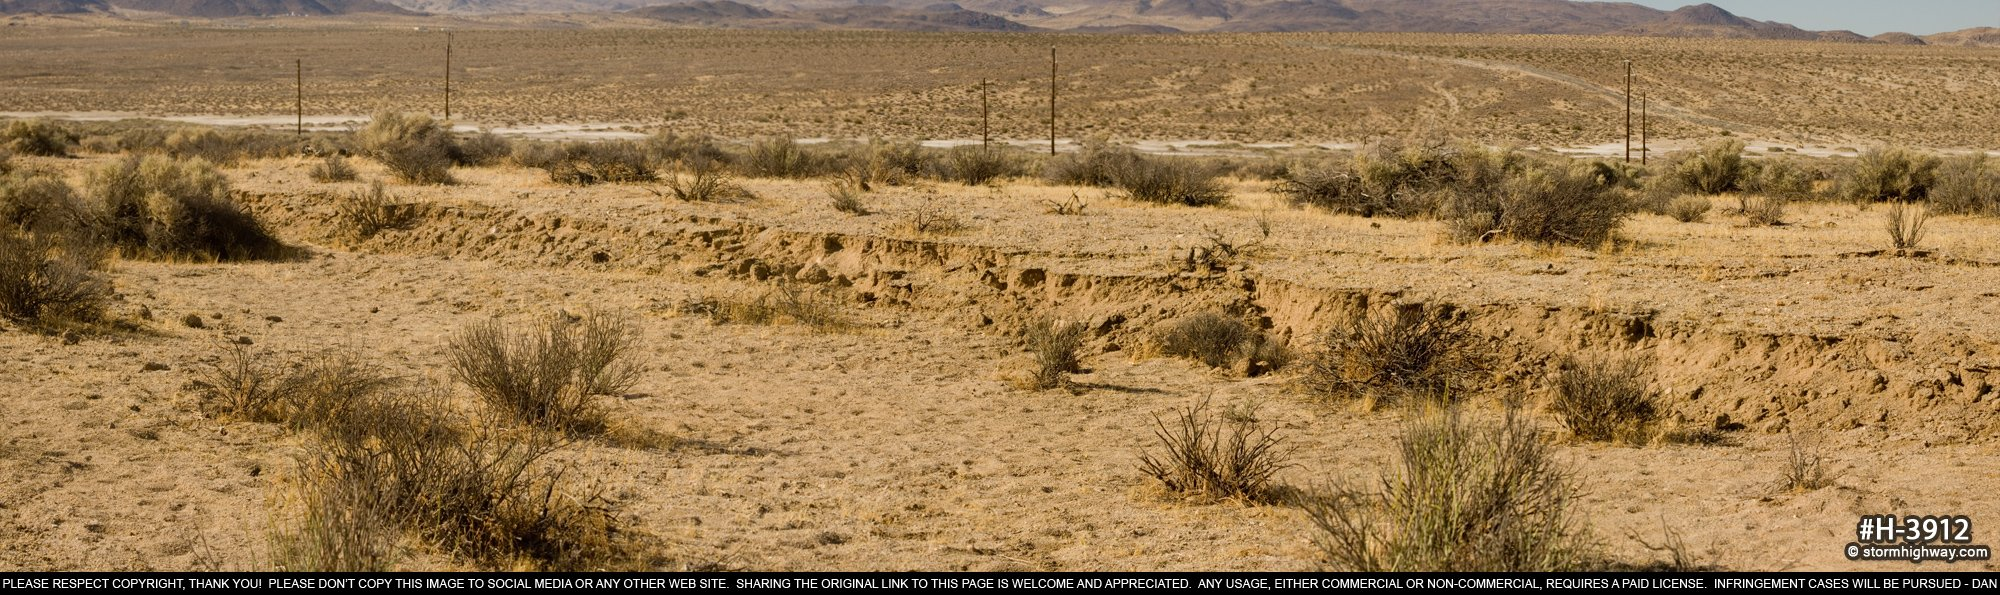 Surface rupture scarps from magnitude 7.1 earthquake near Ridgecrest, CA